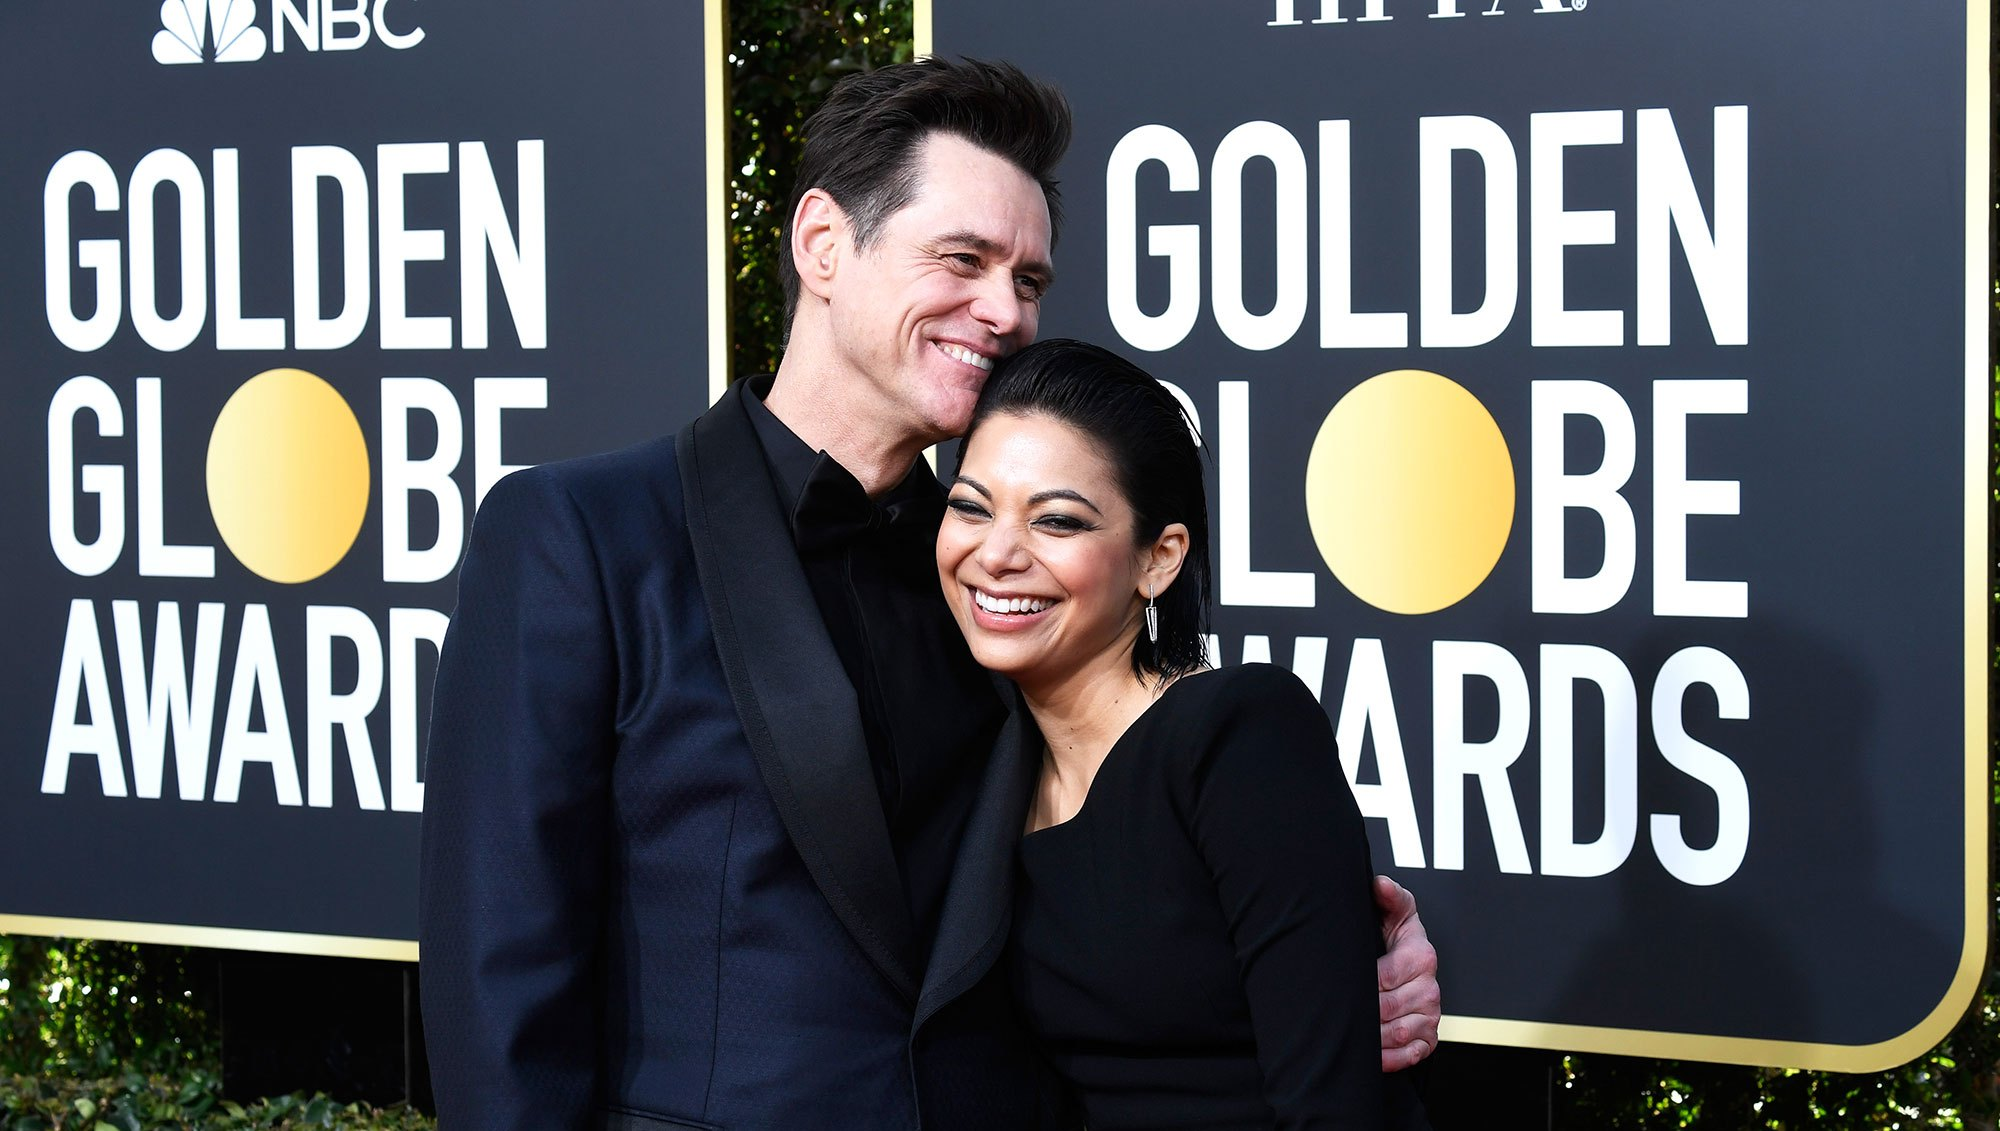 Jim Carrey and Ginger Gonzaga golden globes 2019